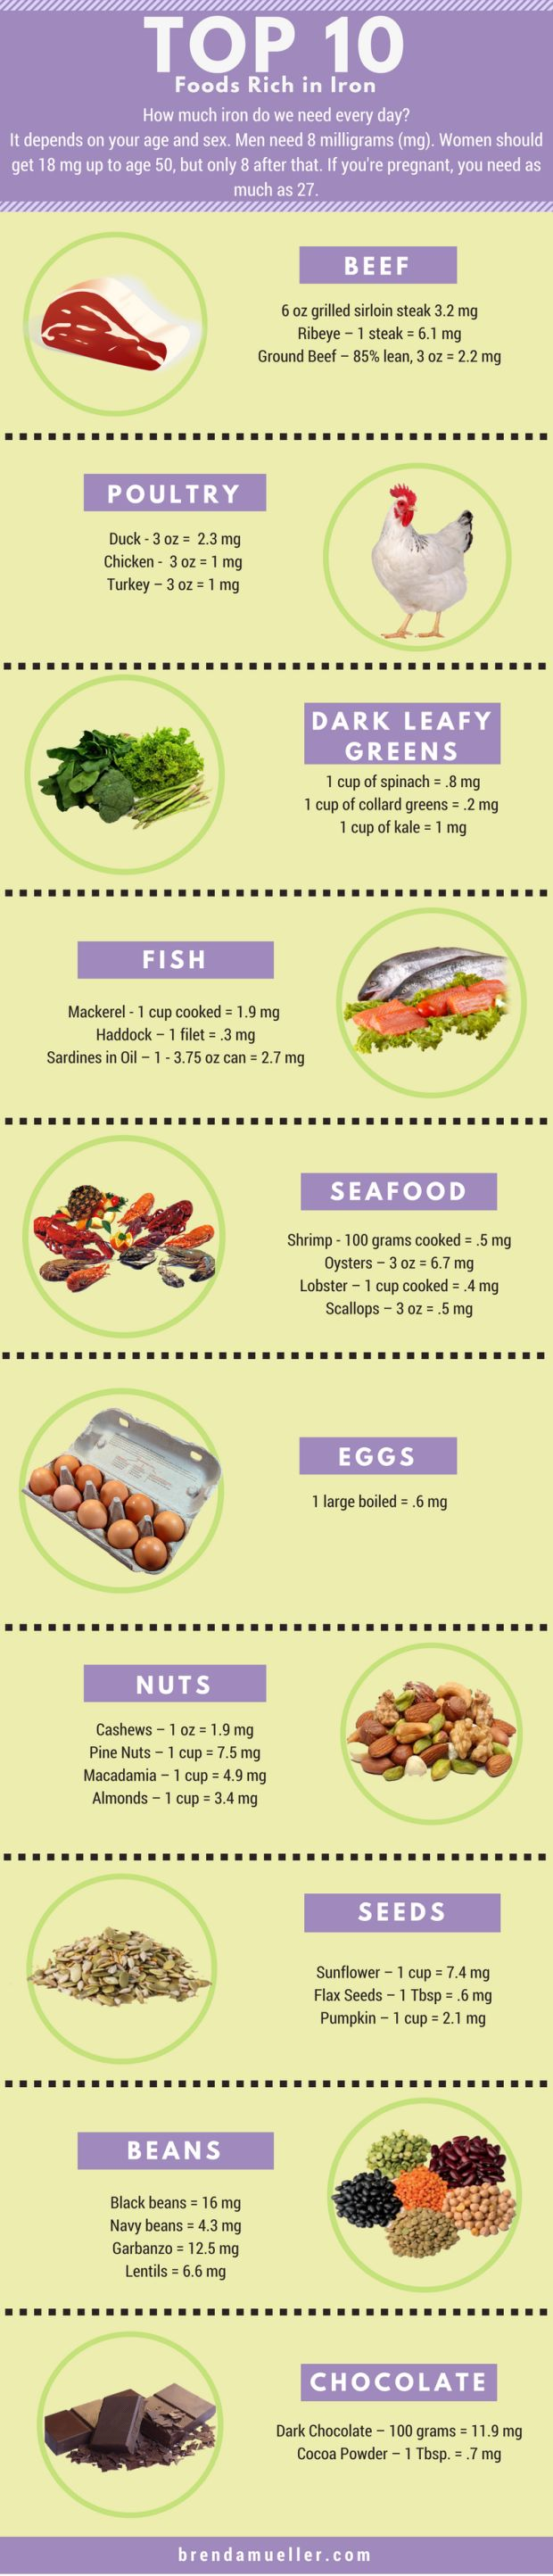 We can get more iron in our diet bu adding these foods to our diet. Click thru to learn more about anemia and how to boost your diet with iron. Top 10 Foods Rich in Iron - brendamueller.com - autoimmune disorders/diseases